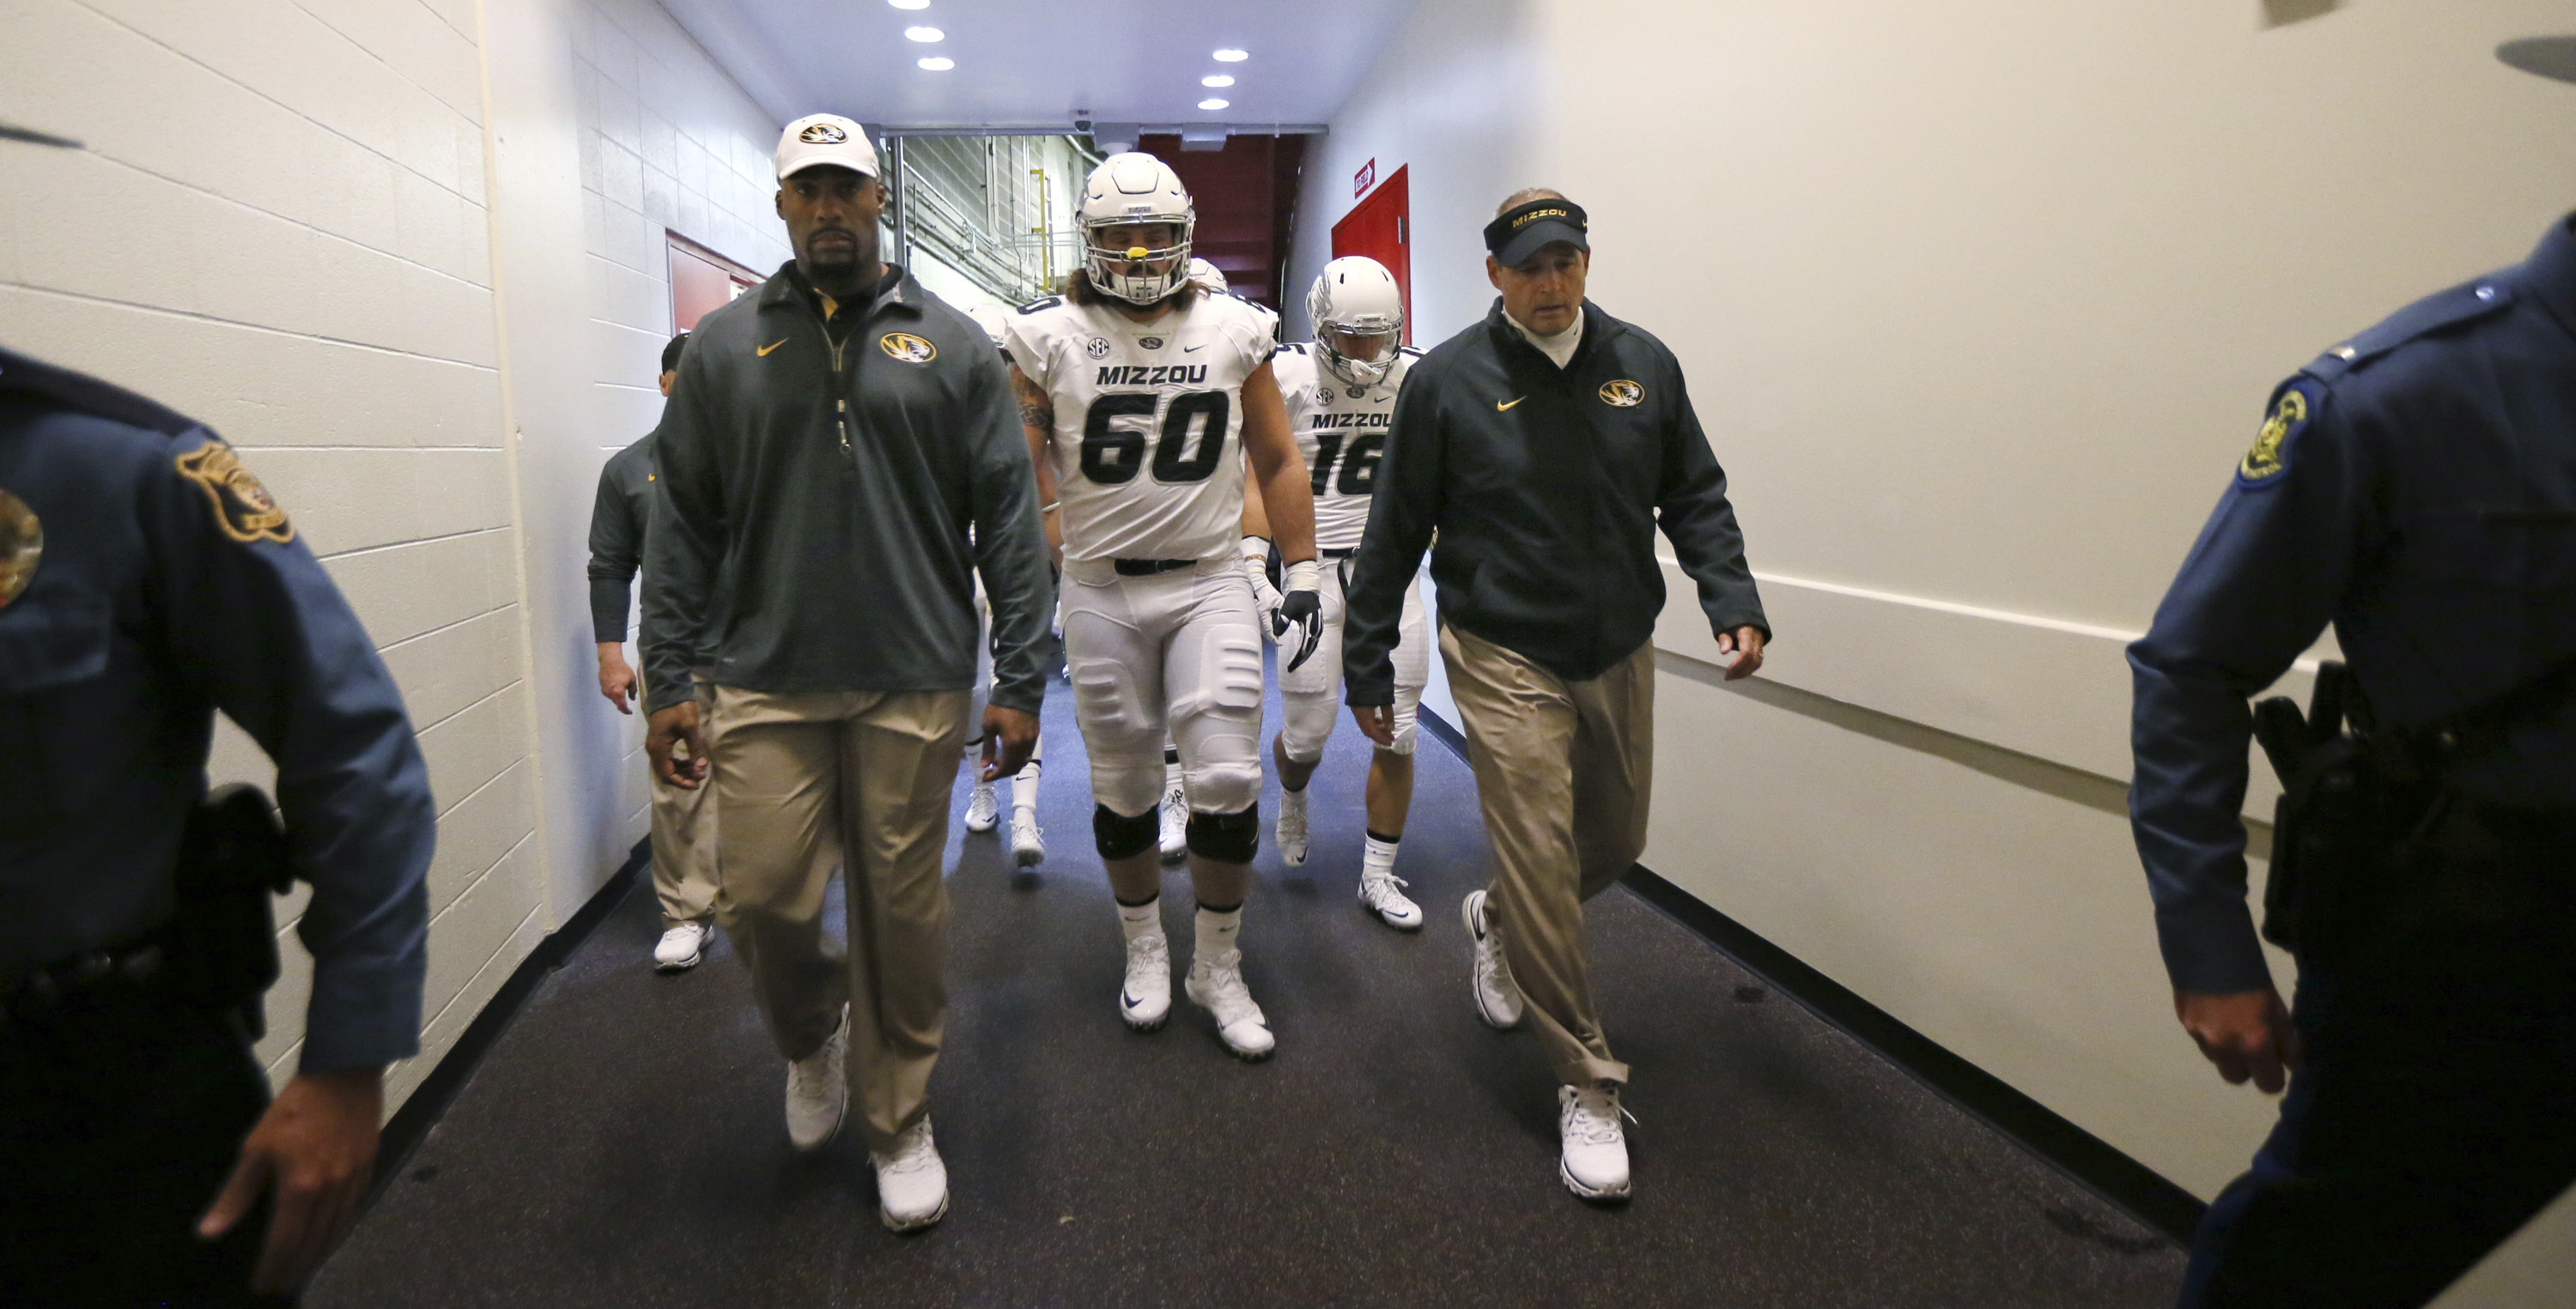 FILE - In this Saturday, Nov. 14, 2015, file photo, Missouri head coach Gary Pinkel, right, leads his players from the locker room to the field before an NCAA college football game between Missouri and BYU at Arrowhead Stadium in Kansas City, Mo. Pinkel s